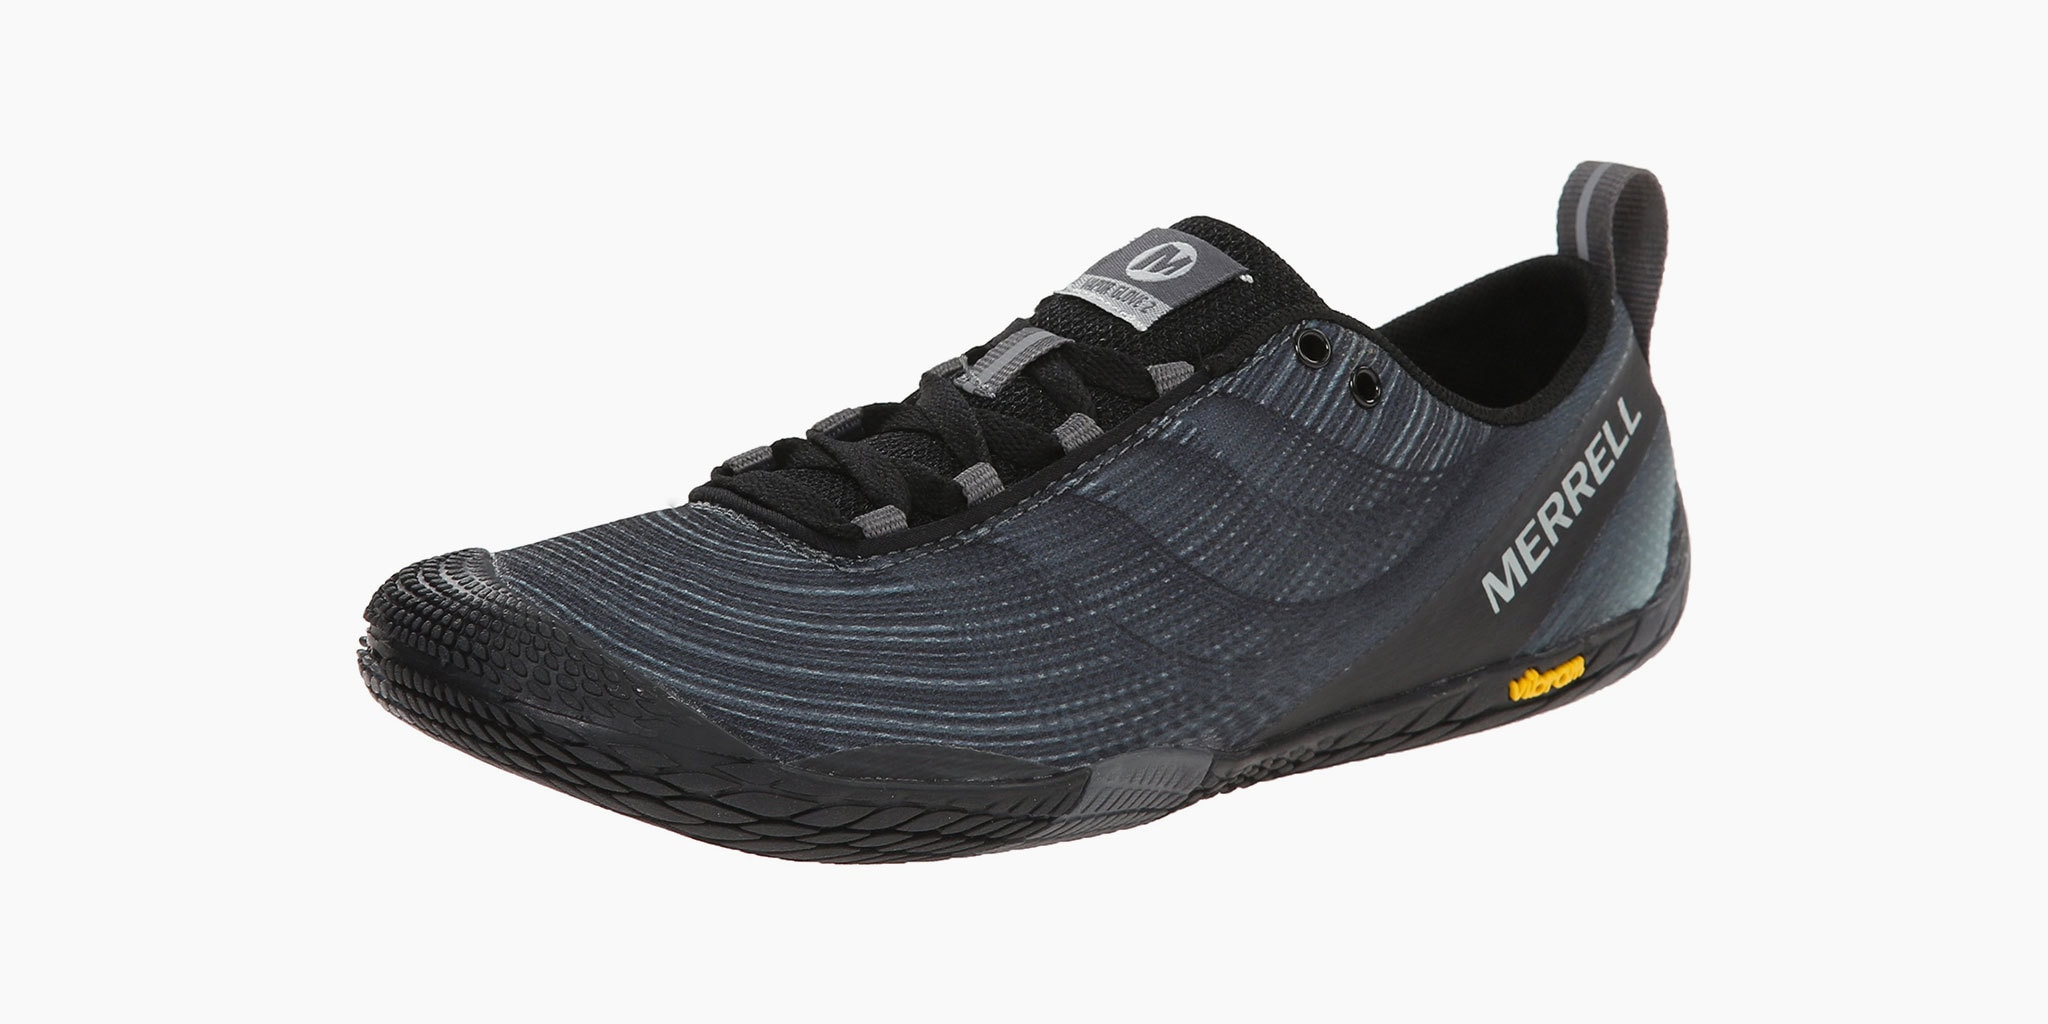 Merrell Shoes Good For Running